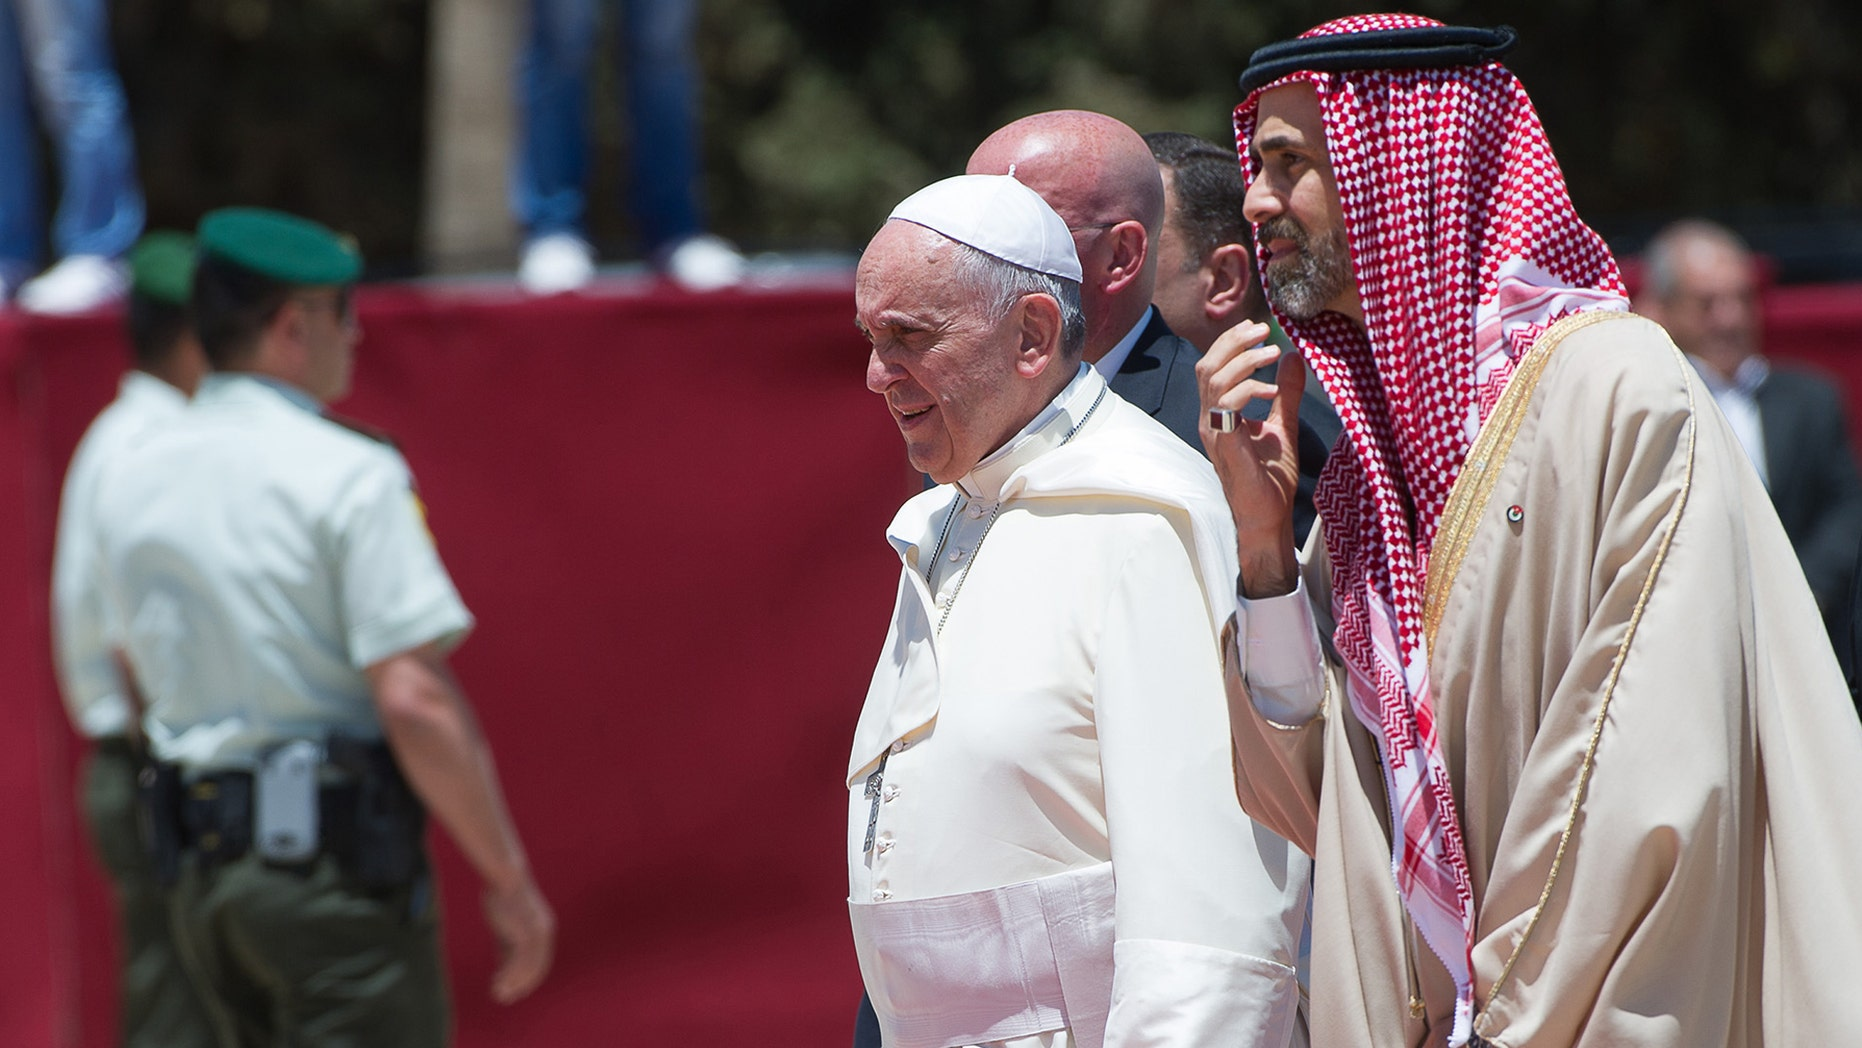 May 24, 2014: In this photo provided by the Vatican newspaper L'Osservatore Romano, Pope Francis is welcomed upon his arrival in Amman, Jordan.